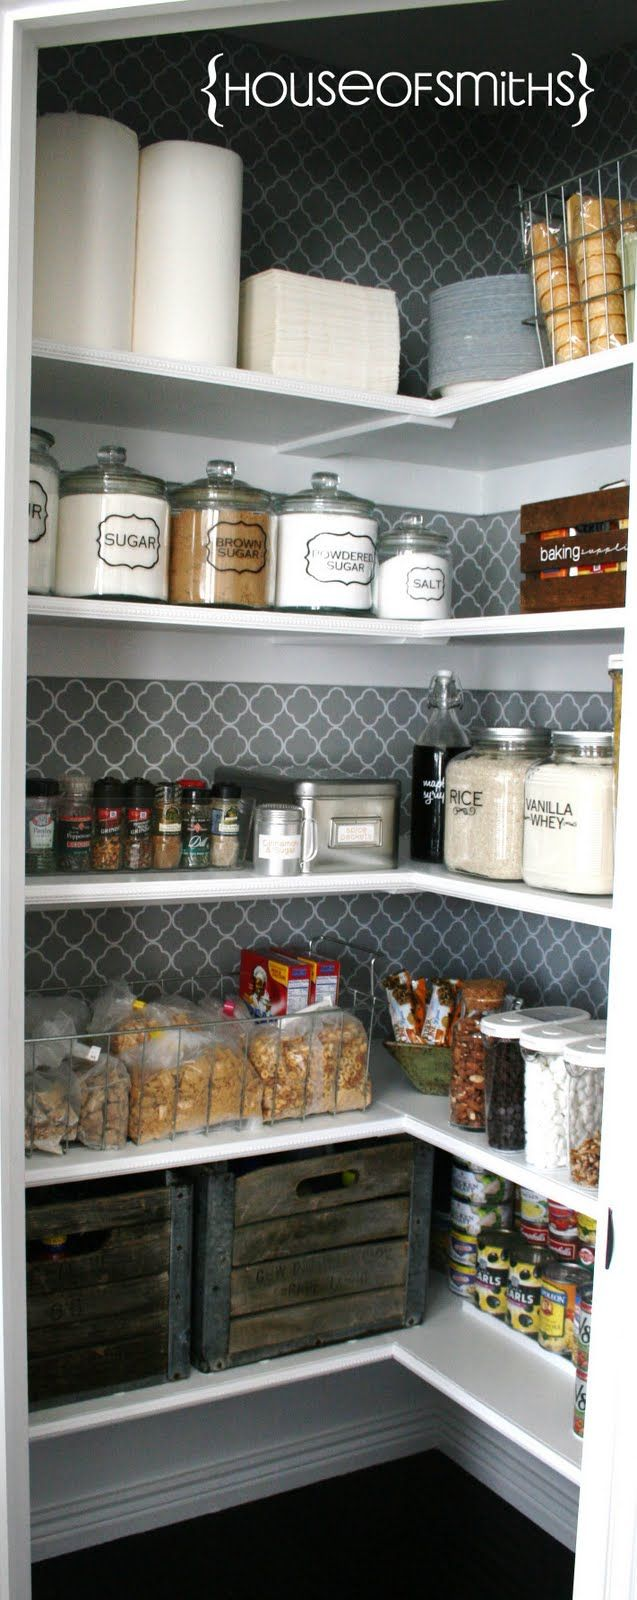 Space in the kitchen by adding shelves and glass canisters with seals - I Like The Patterned Walls In The Pantry